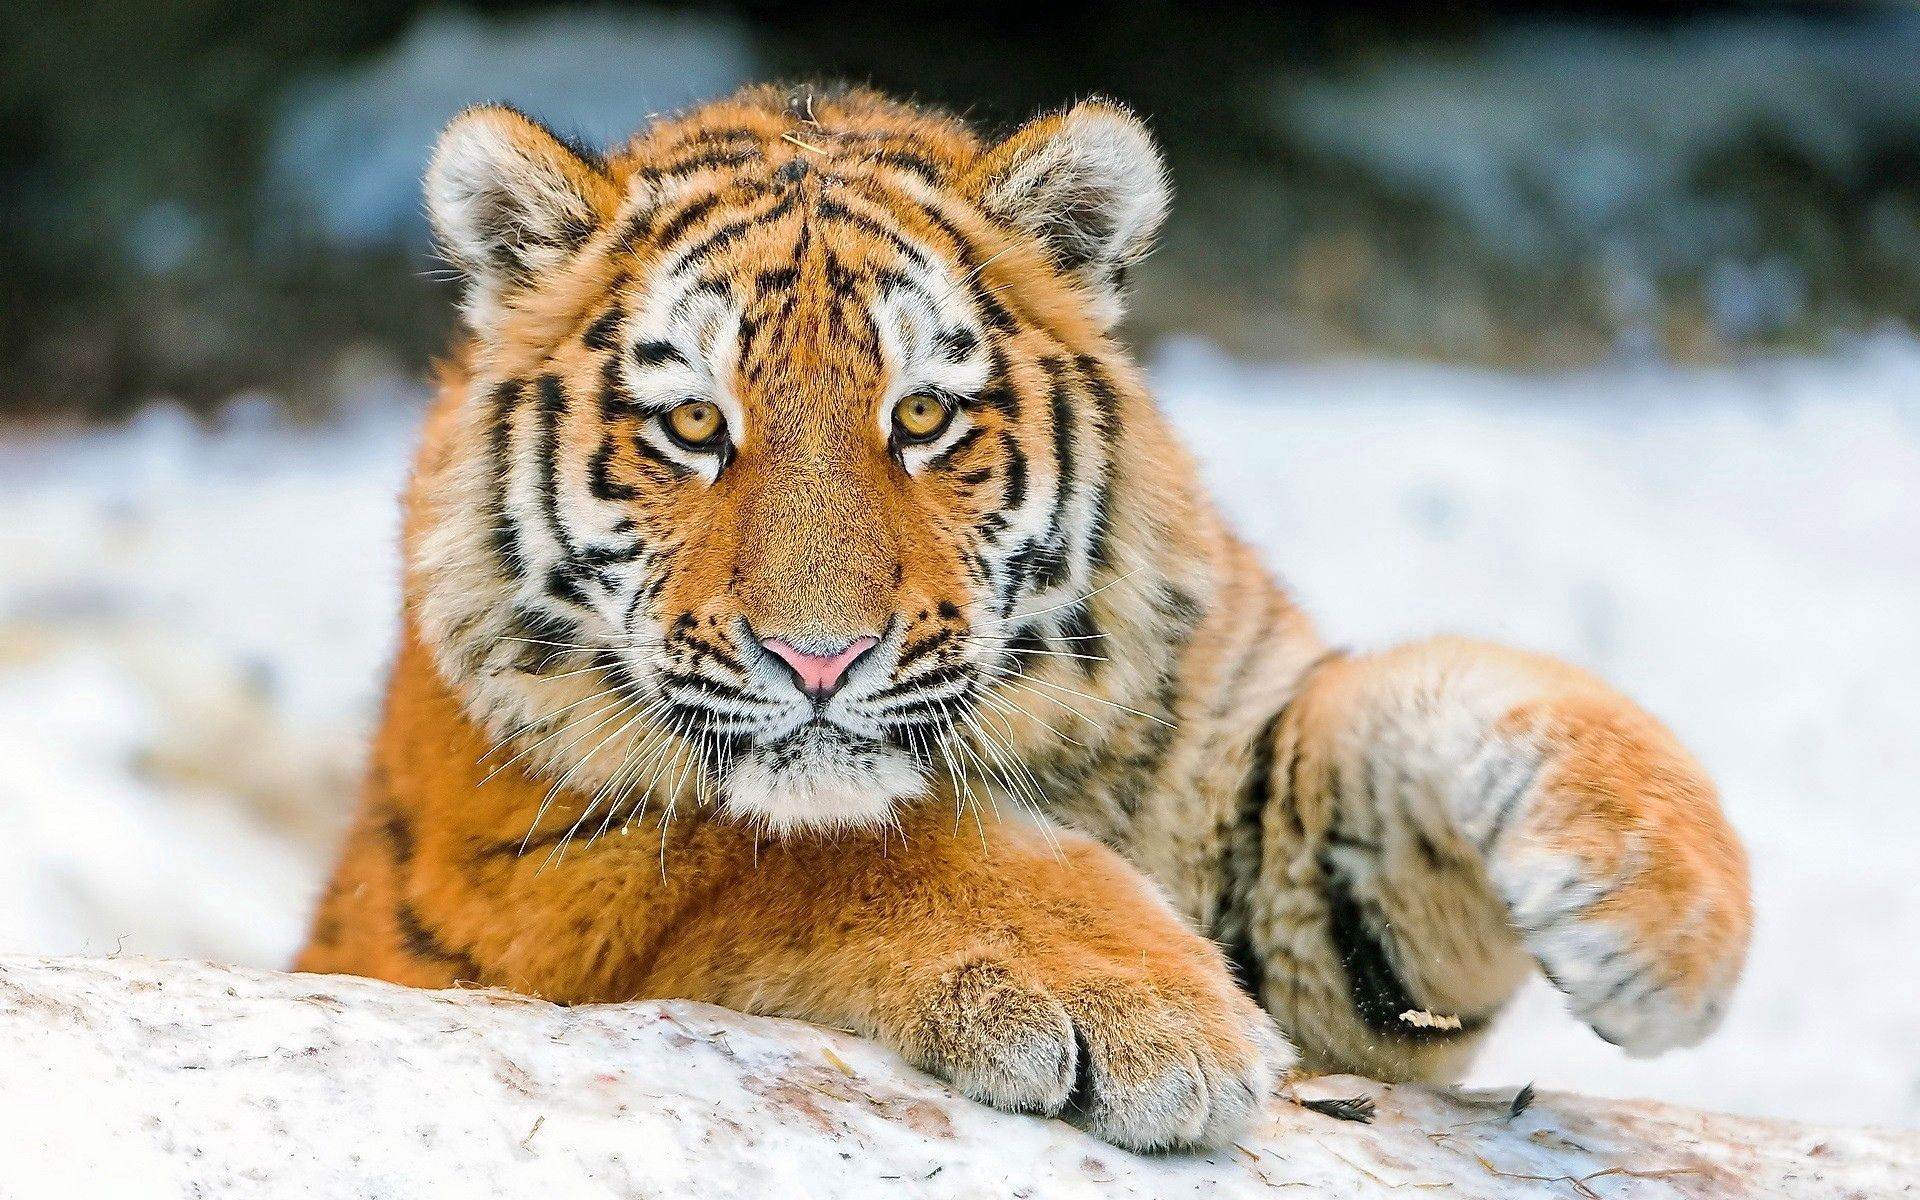 96623 download wallpaper Animals, Tiger, Big Cat, Young, Paw screensavers and pictures for free